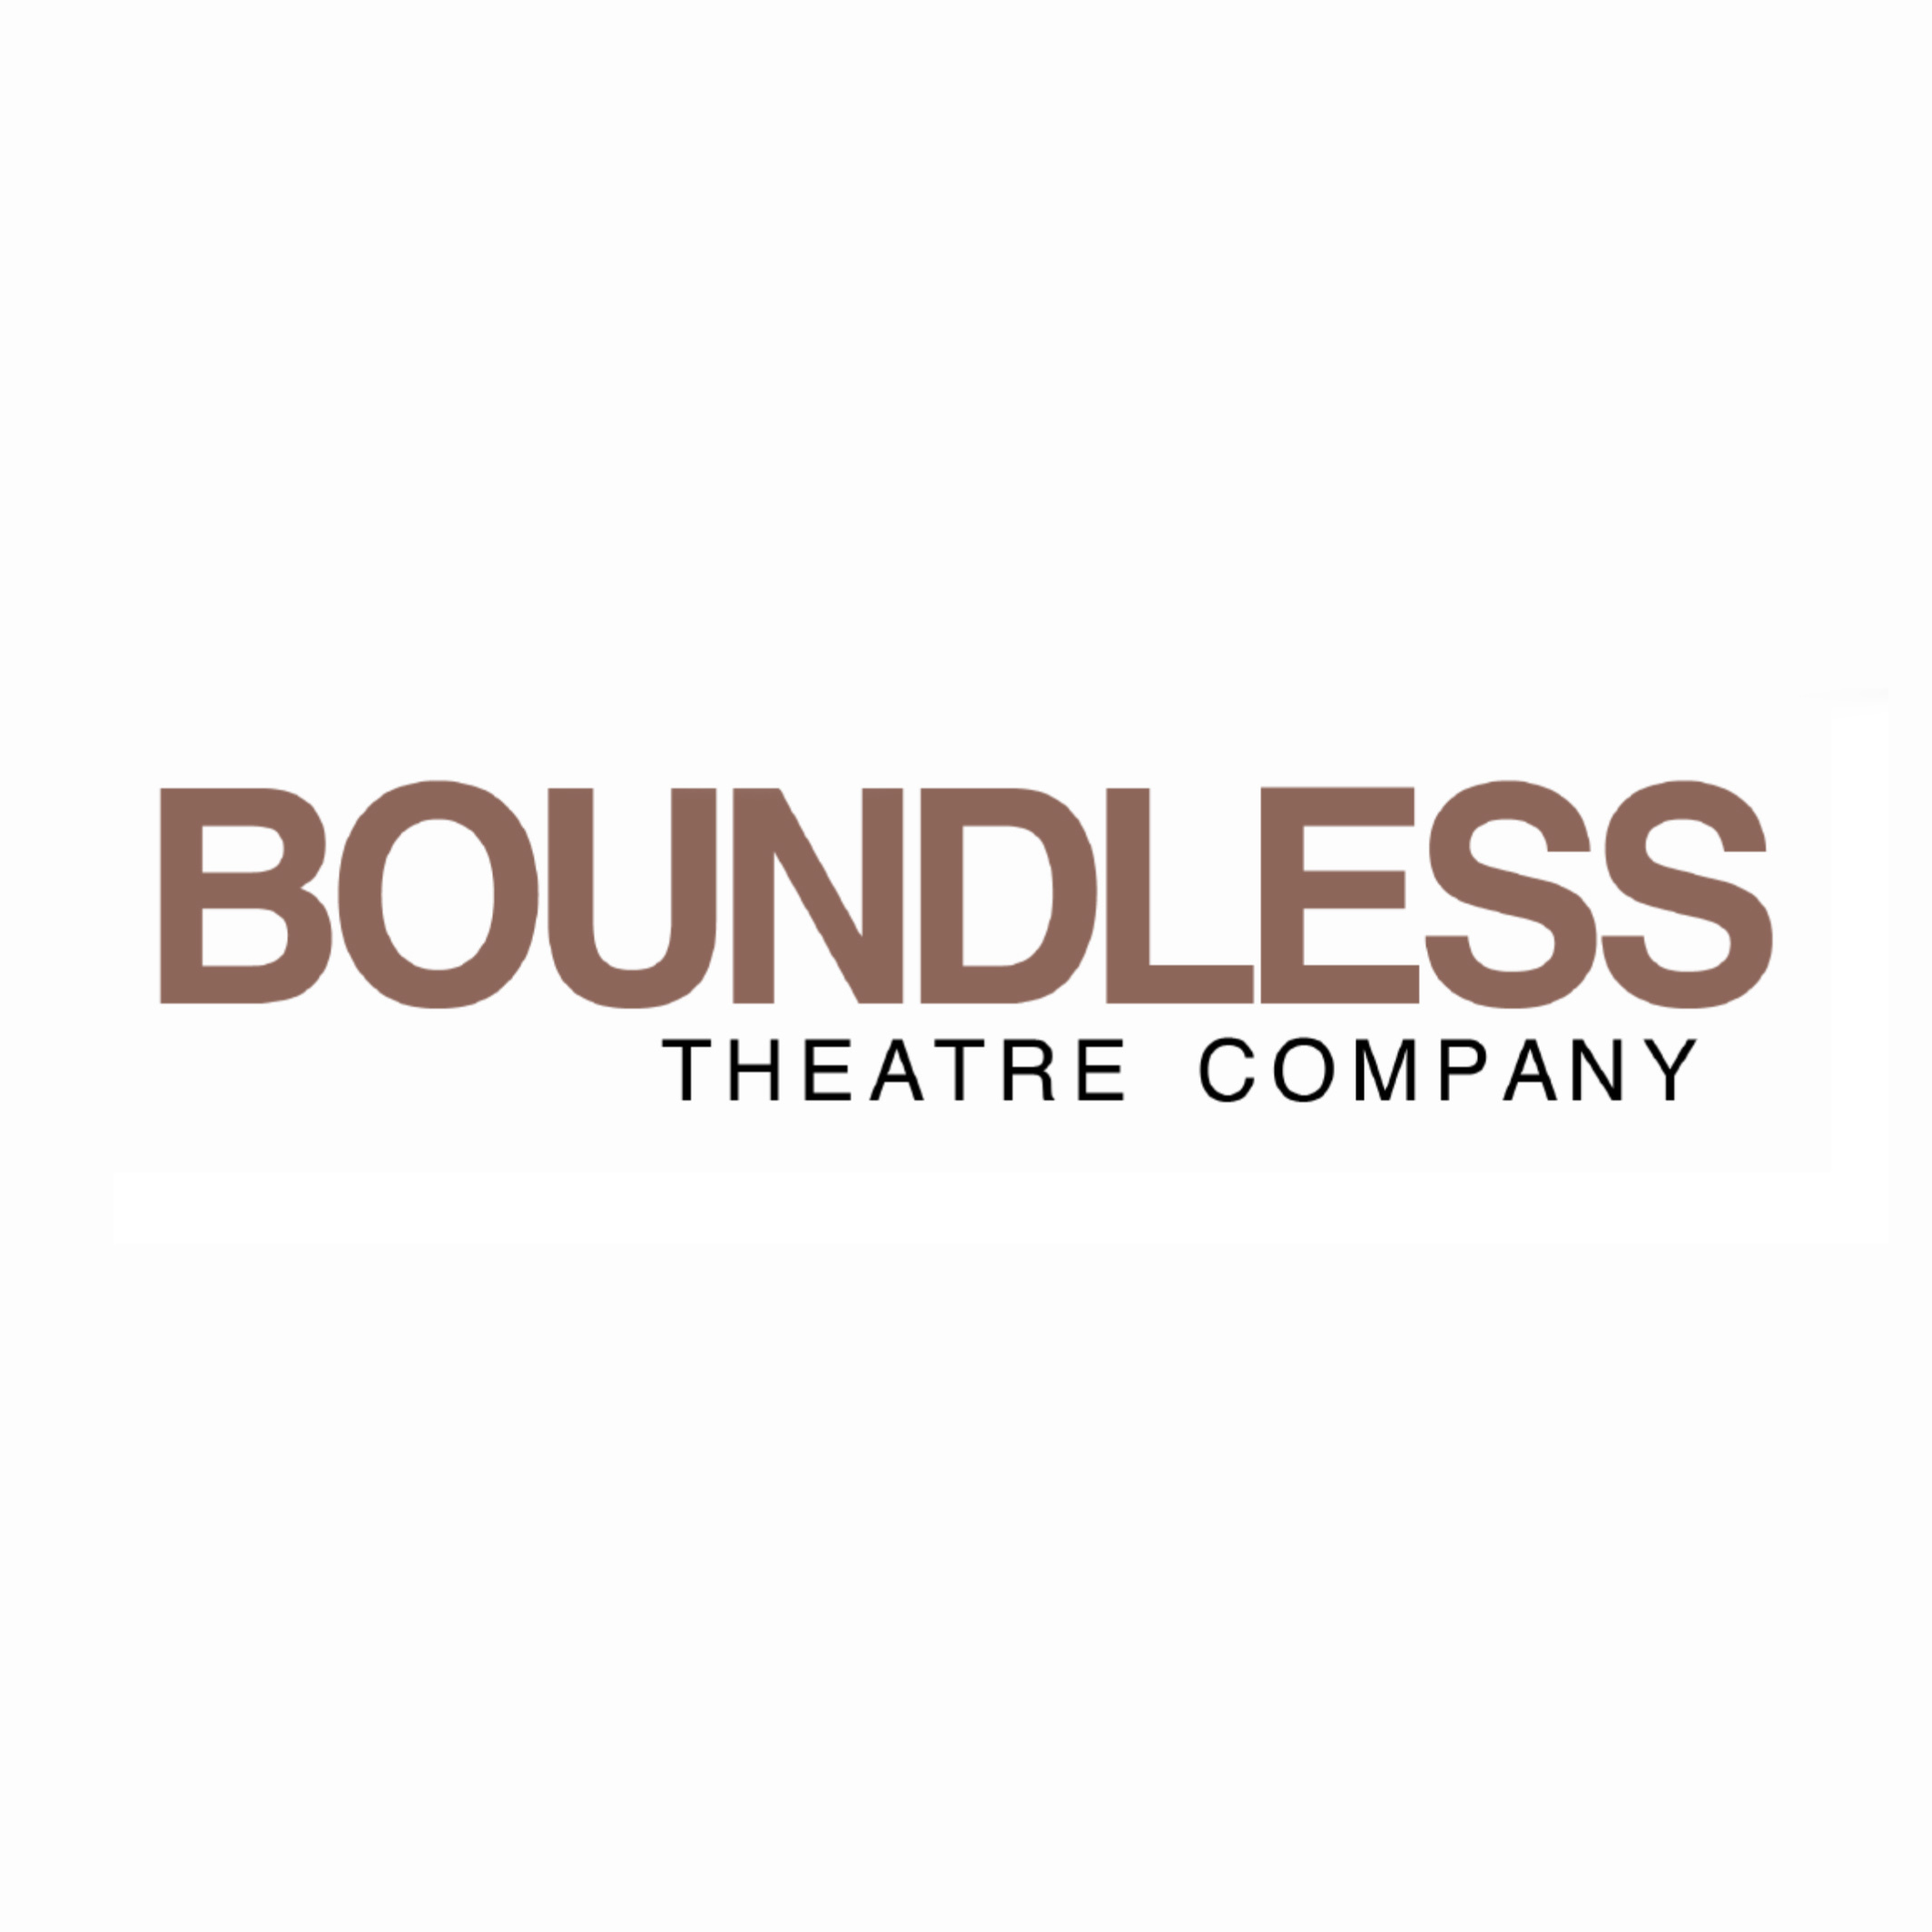 Boundless Theater Company